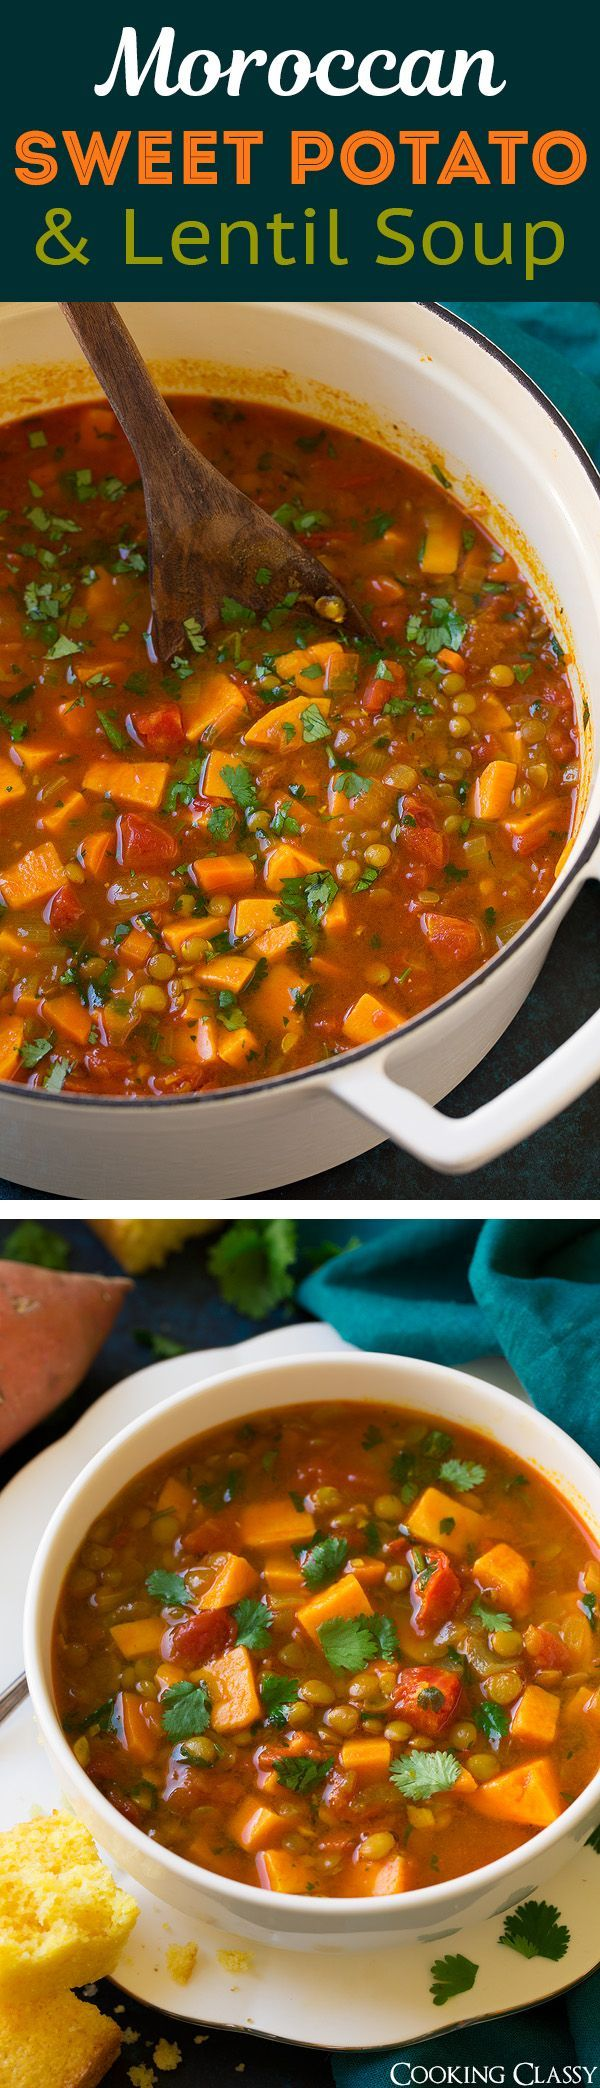 Sweet Potato and Lentil Soup - Seriously flavorful and totally delicious ! The perfect way to use up sweet potatoes.